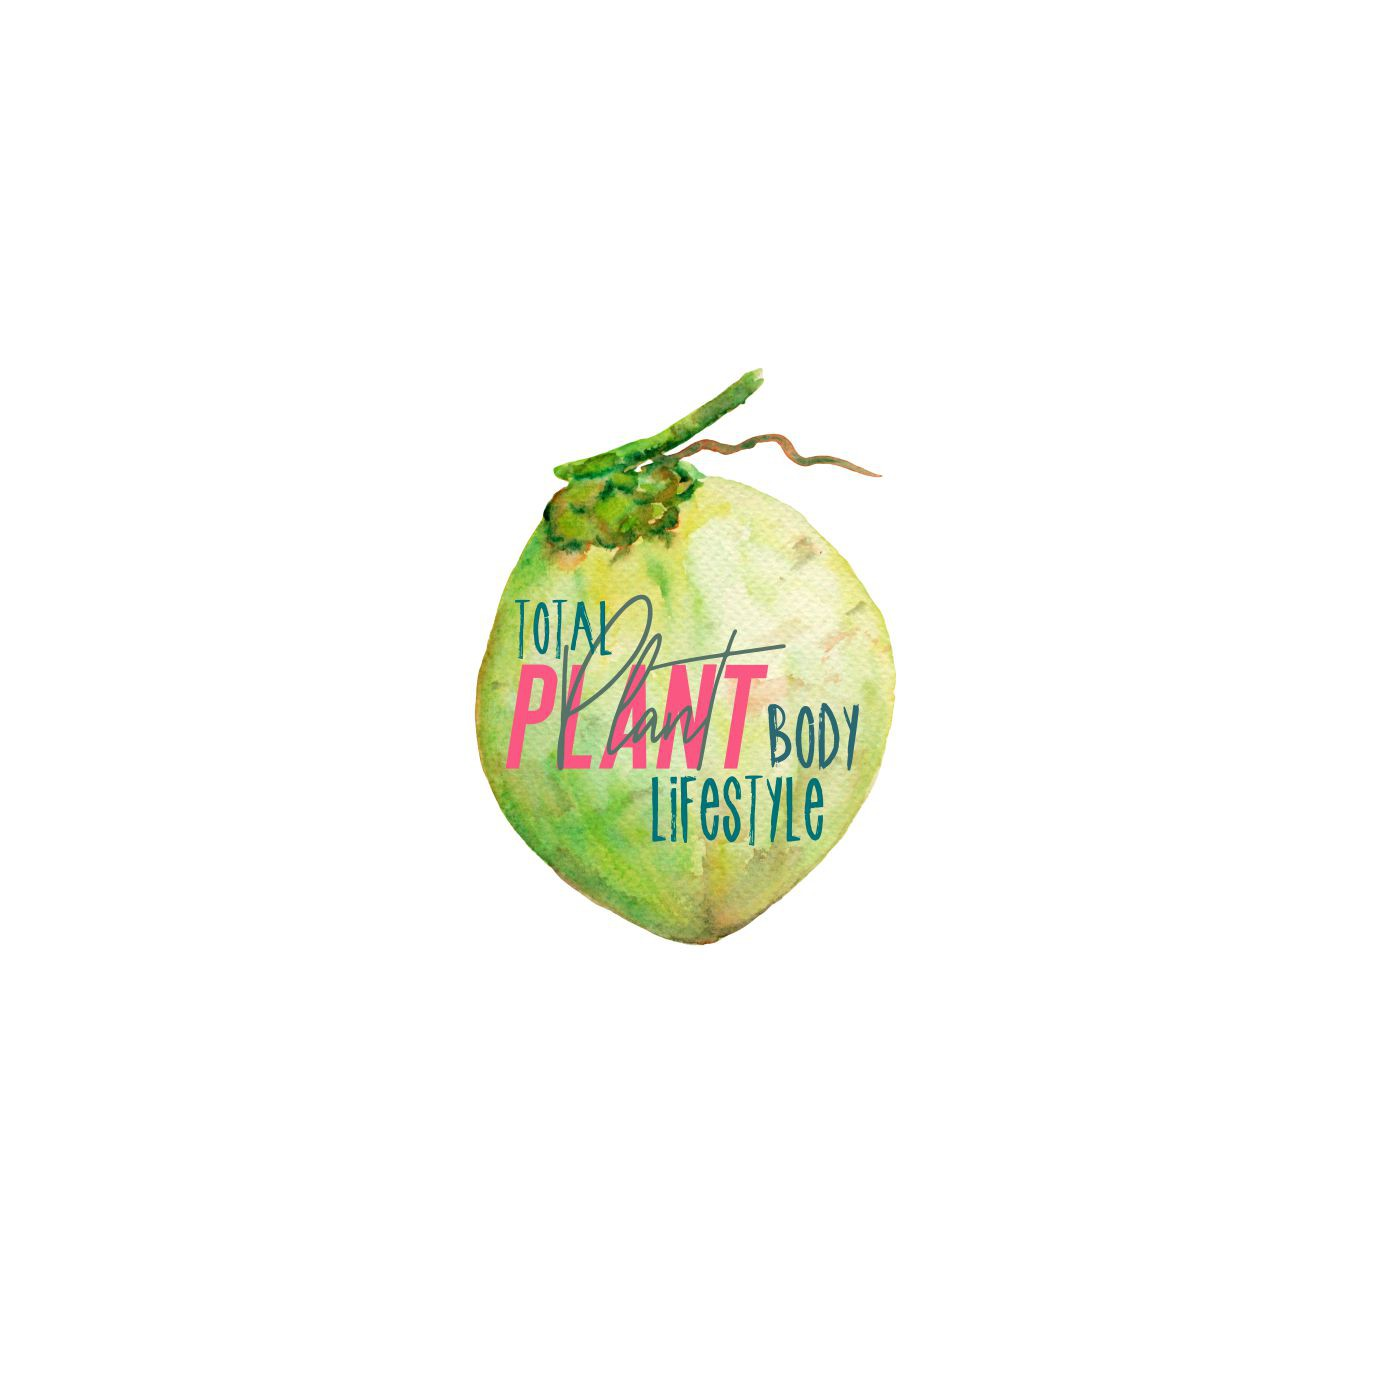 Create a Trendy Organic Brand/logo for Total Plant Body products and courses